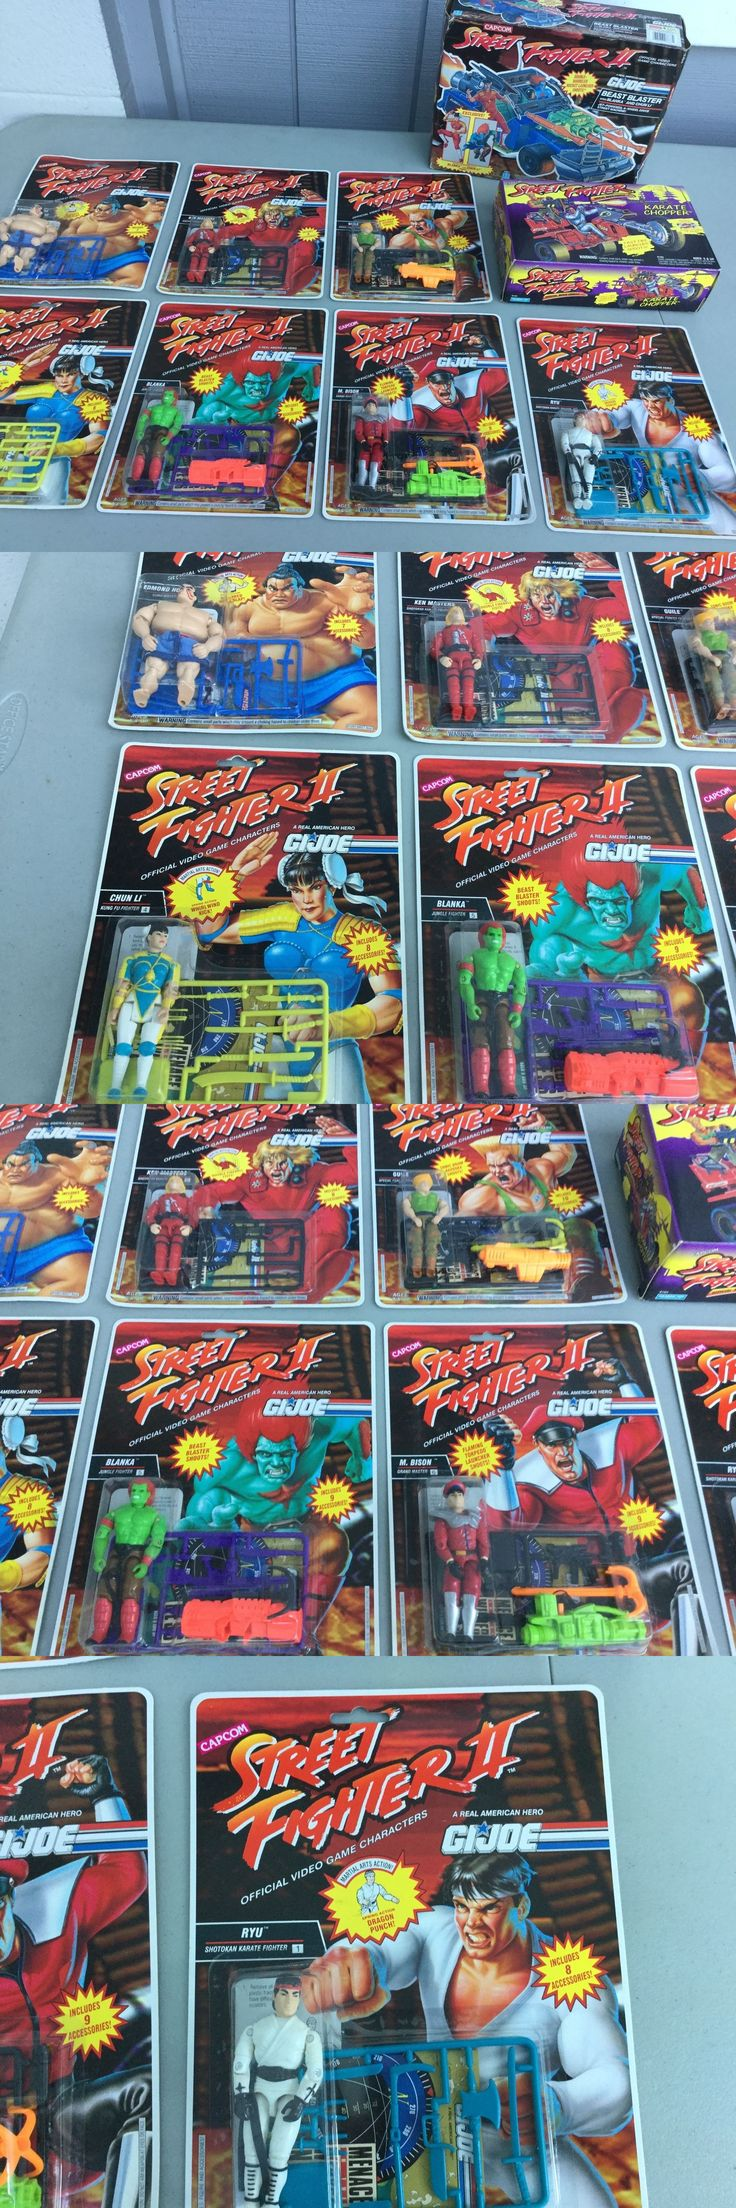 Military and Adventure 158679: Hasbro Gi Joe Street Fighter 2 Lot Of 9 Of Figures And Vehicles Sealed.Look. -> BUY IT NOW ONLY: $299.99 on eBay!